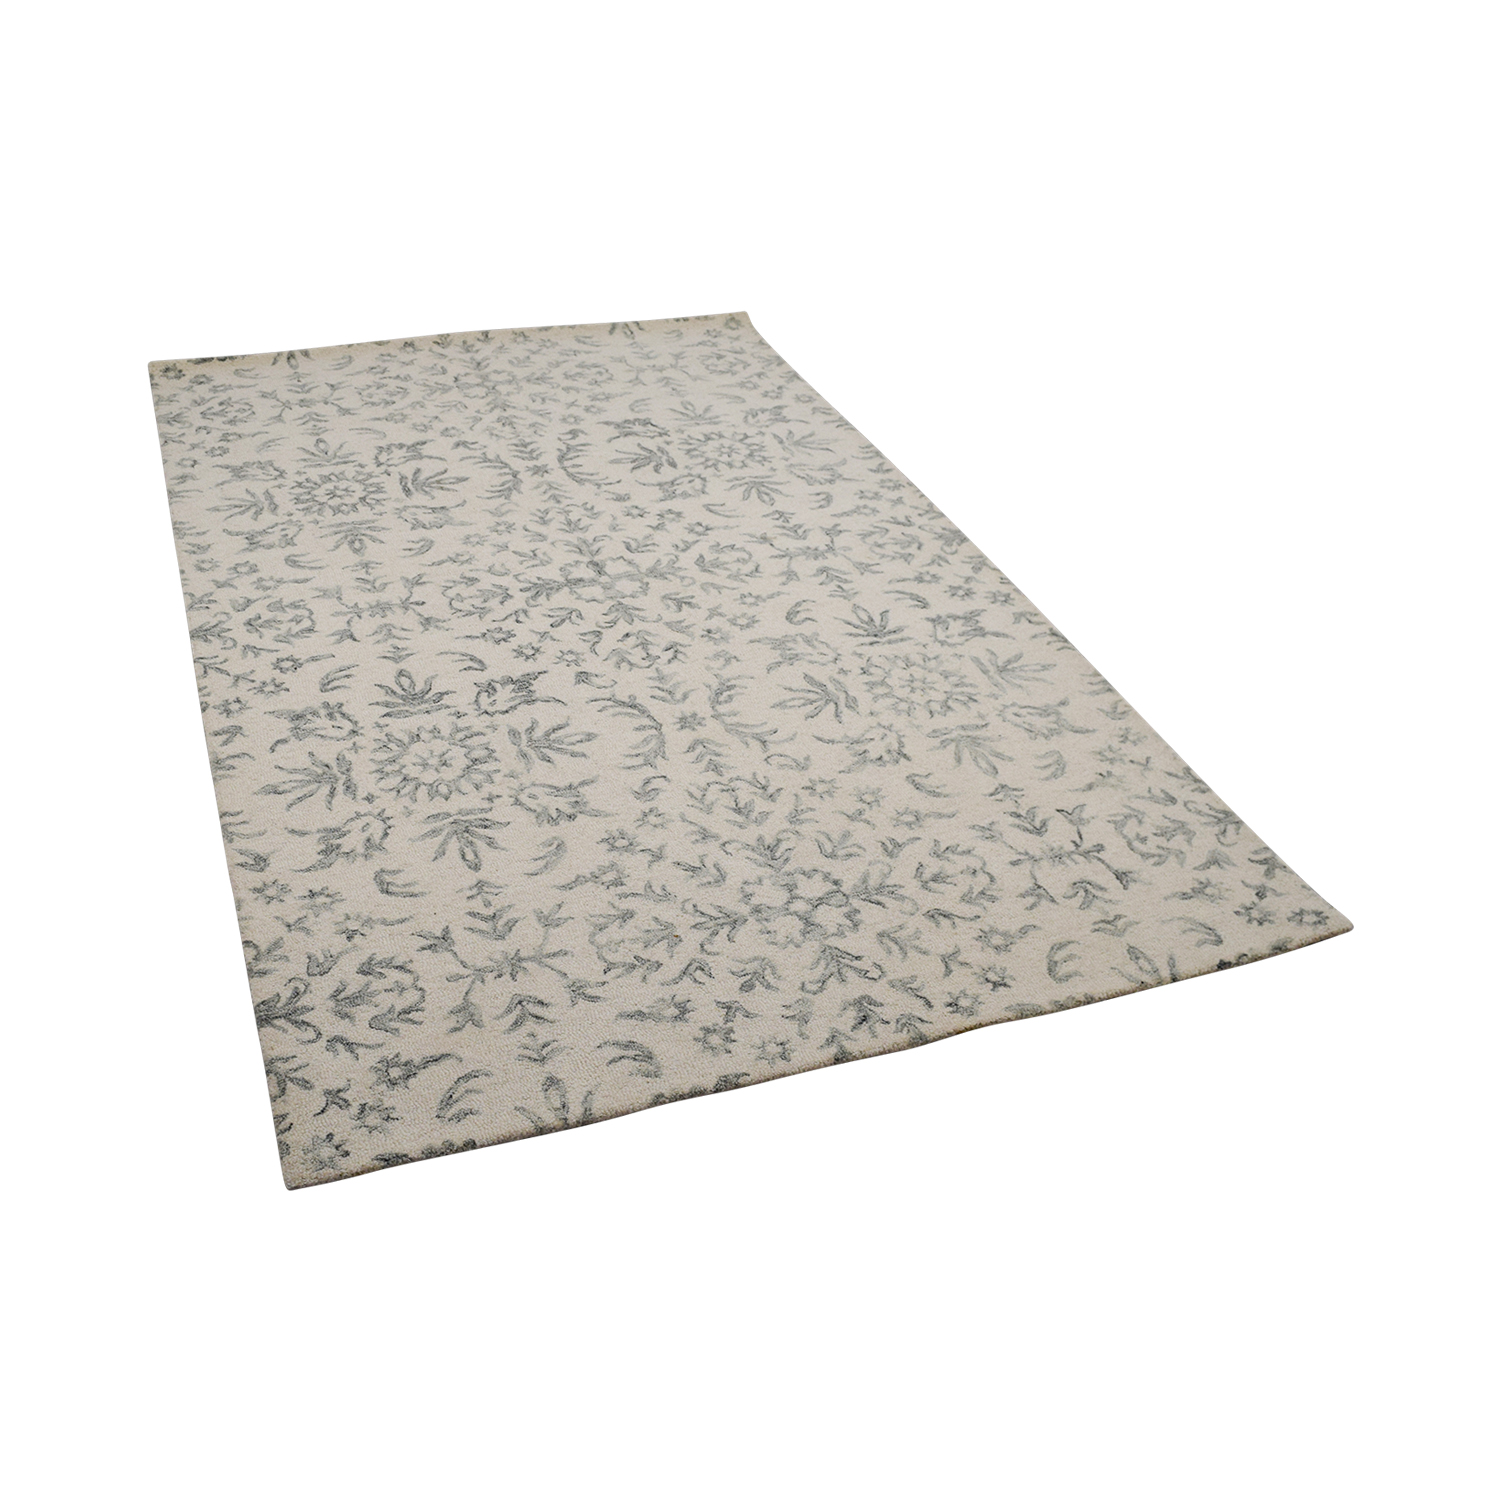 Obeetee White and Light Gray Rug Obeetee